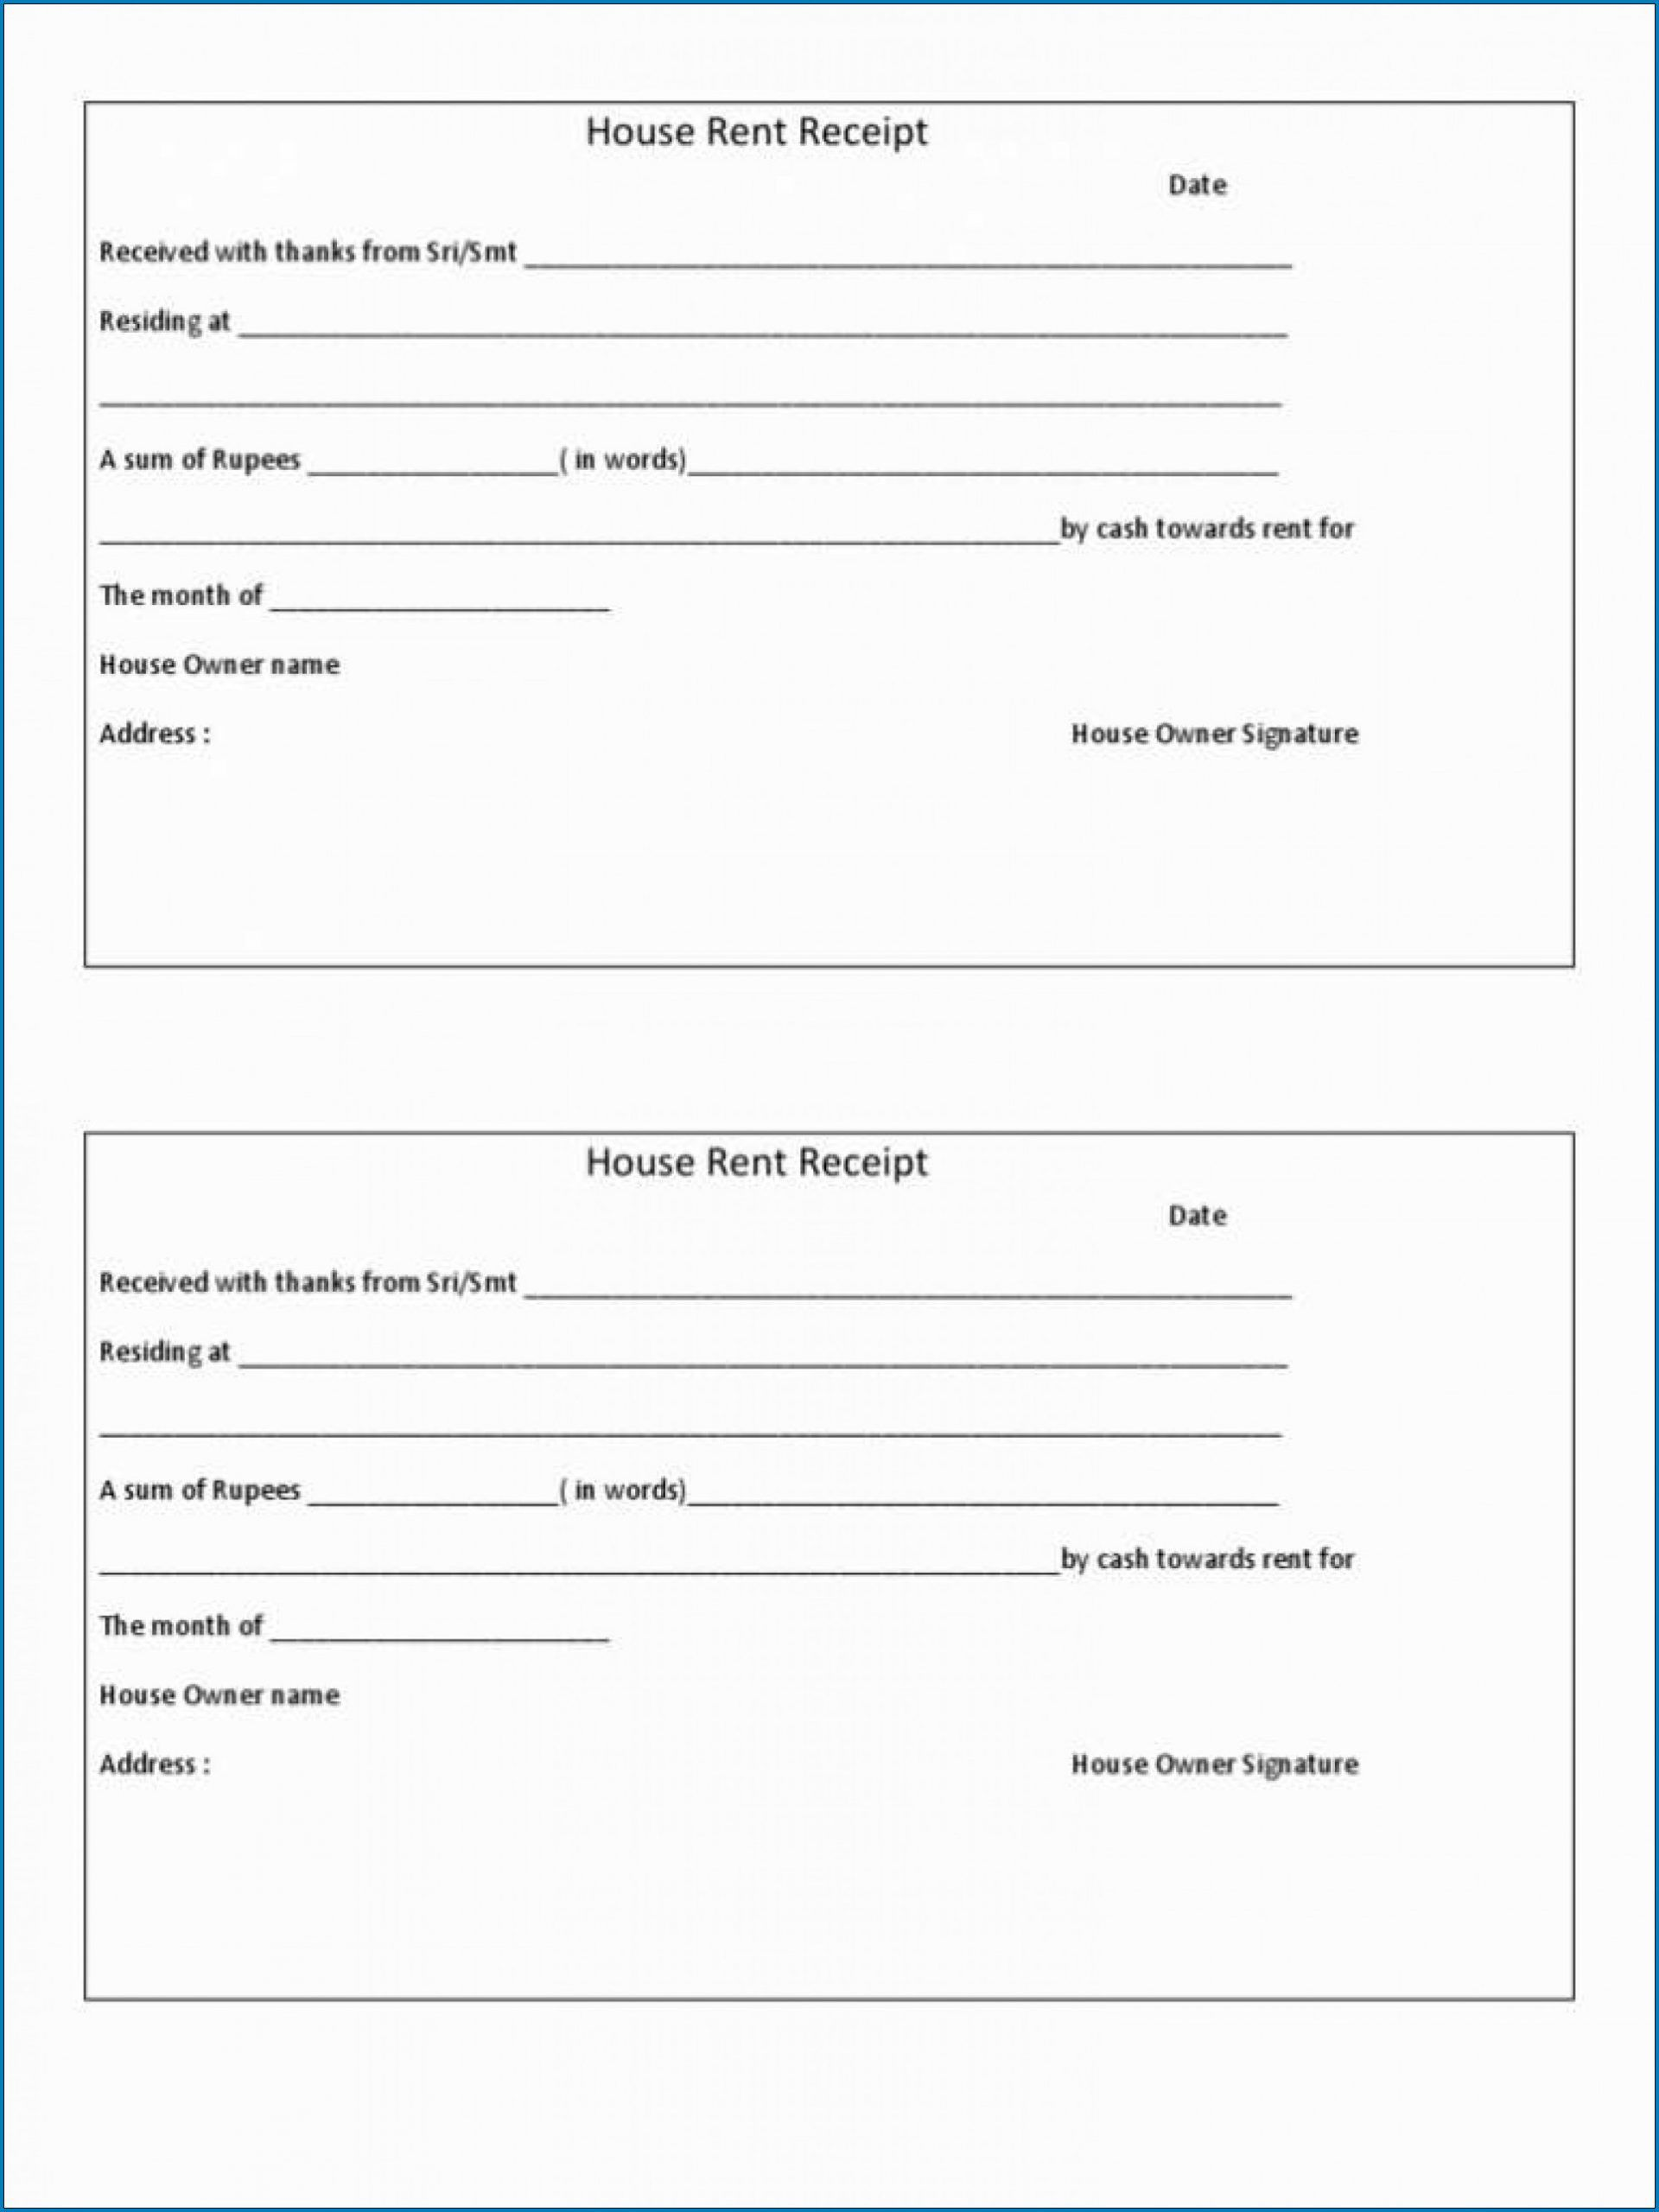 009 Magnificent Rent Receipt Sample Doc Design  Format Word India Docx DocumentFull